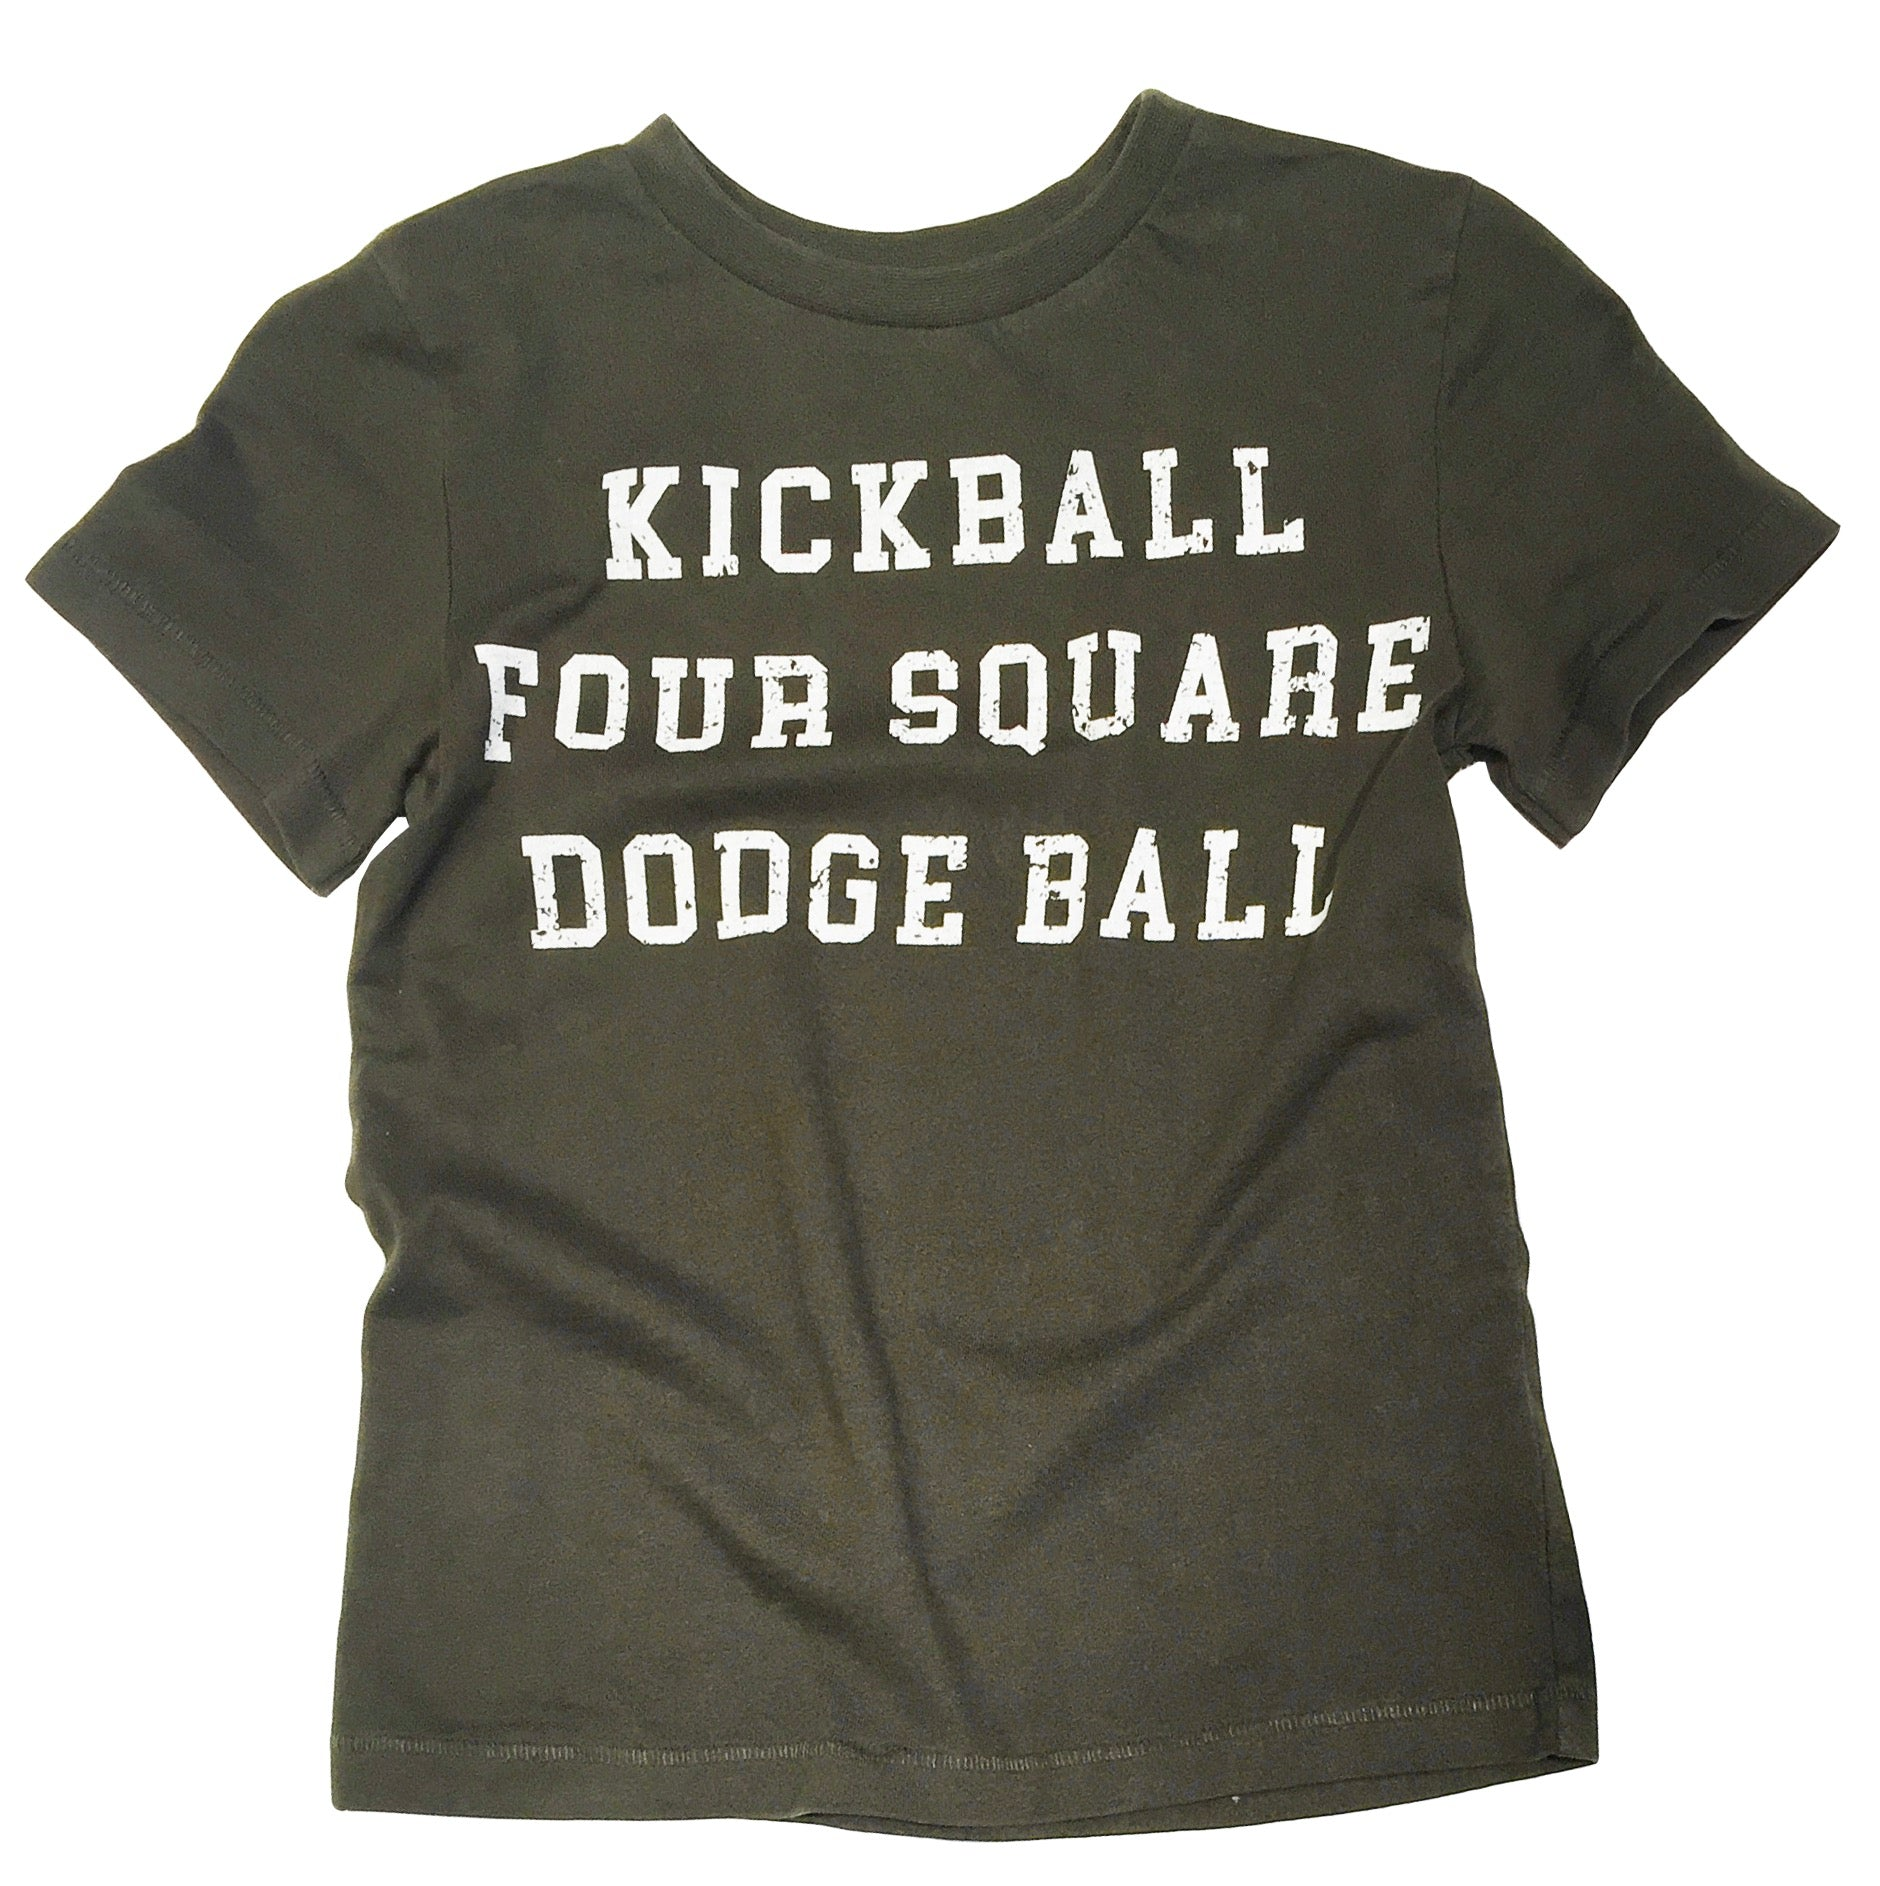 KICKBALL FOUR SQUARE DODGEBALL